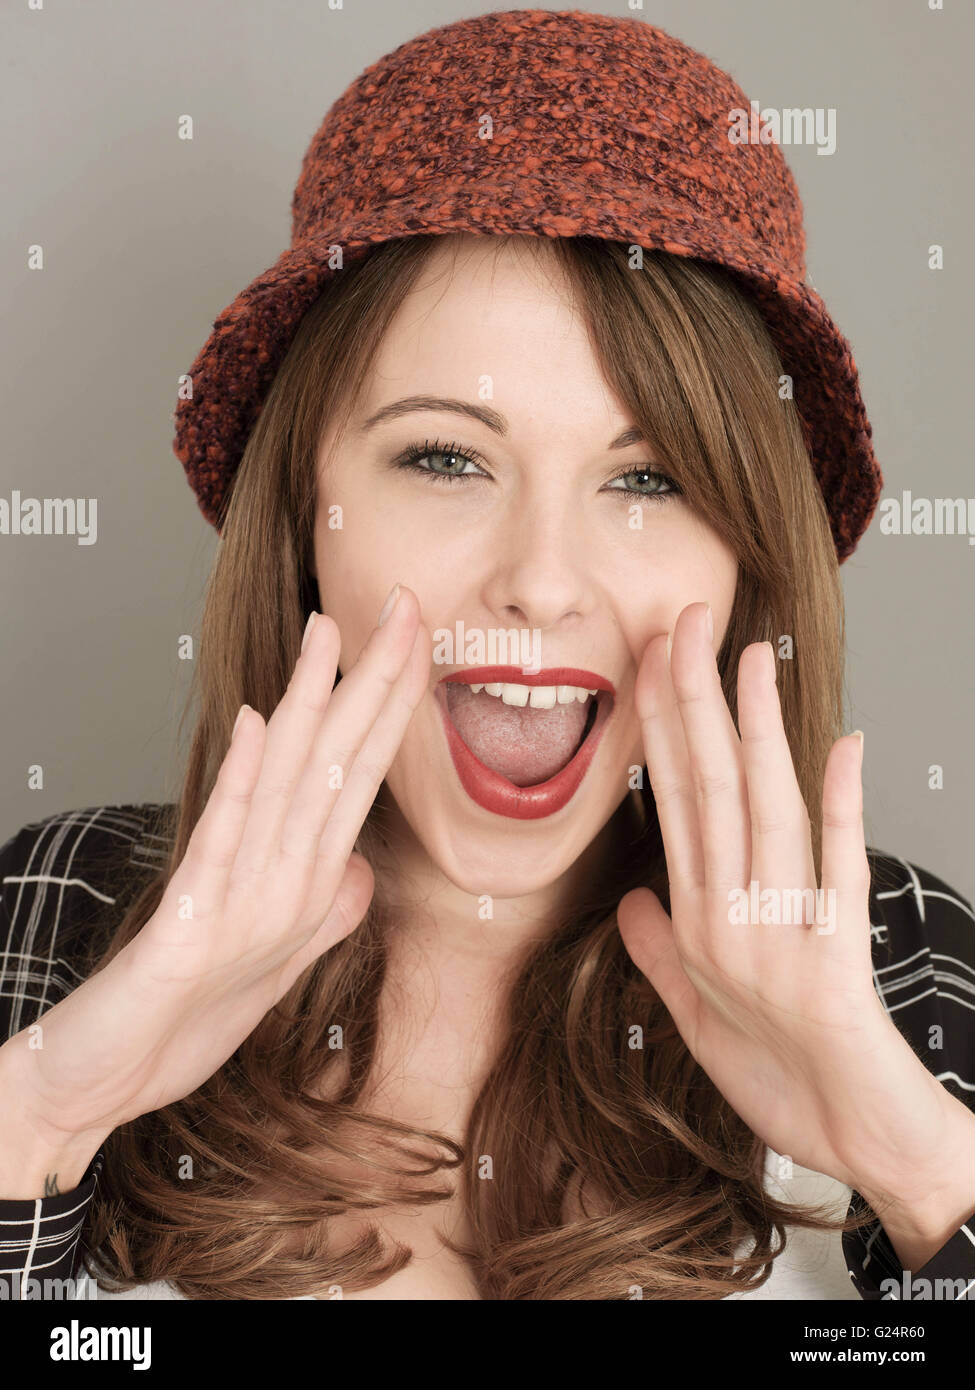 Portrait of a Woman Wearing a Red Woolen Hat Happy Pleased and Excited Shouting out Good News or Attracting Attention - Stock Image